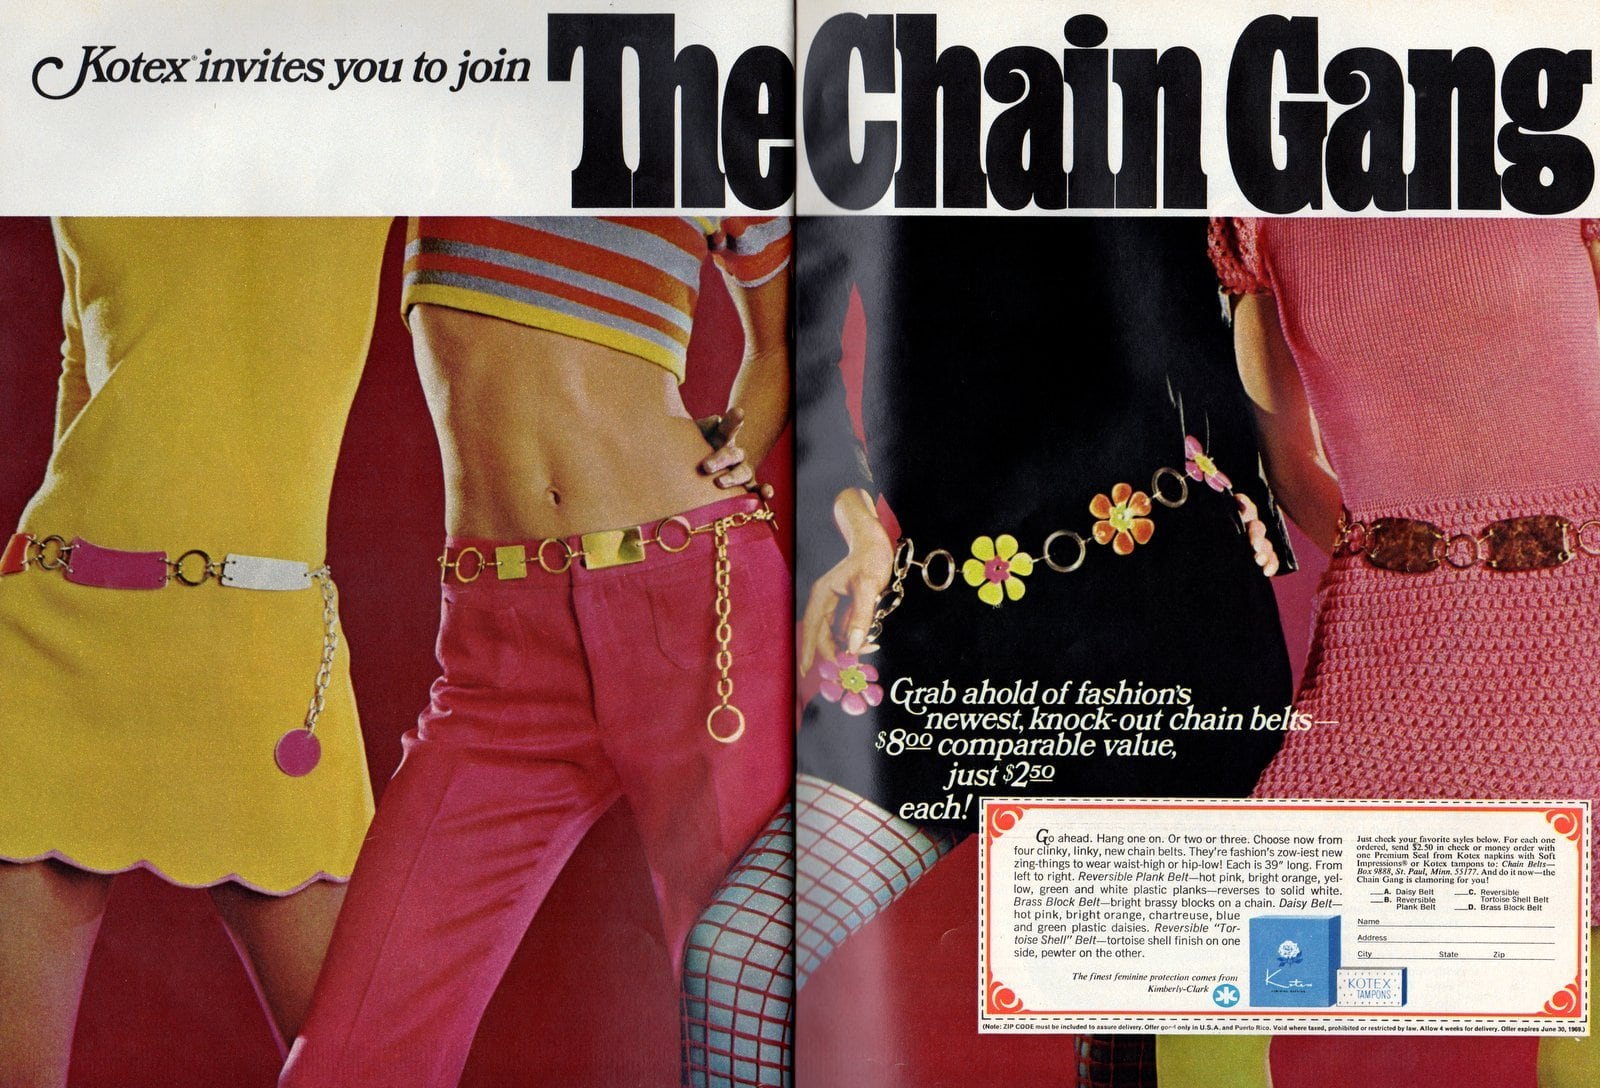 Chain belts from Kotex - vintage offer (1968)